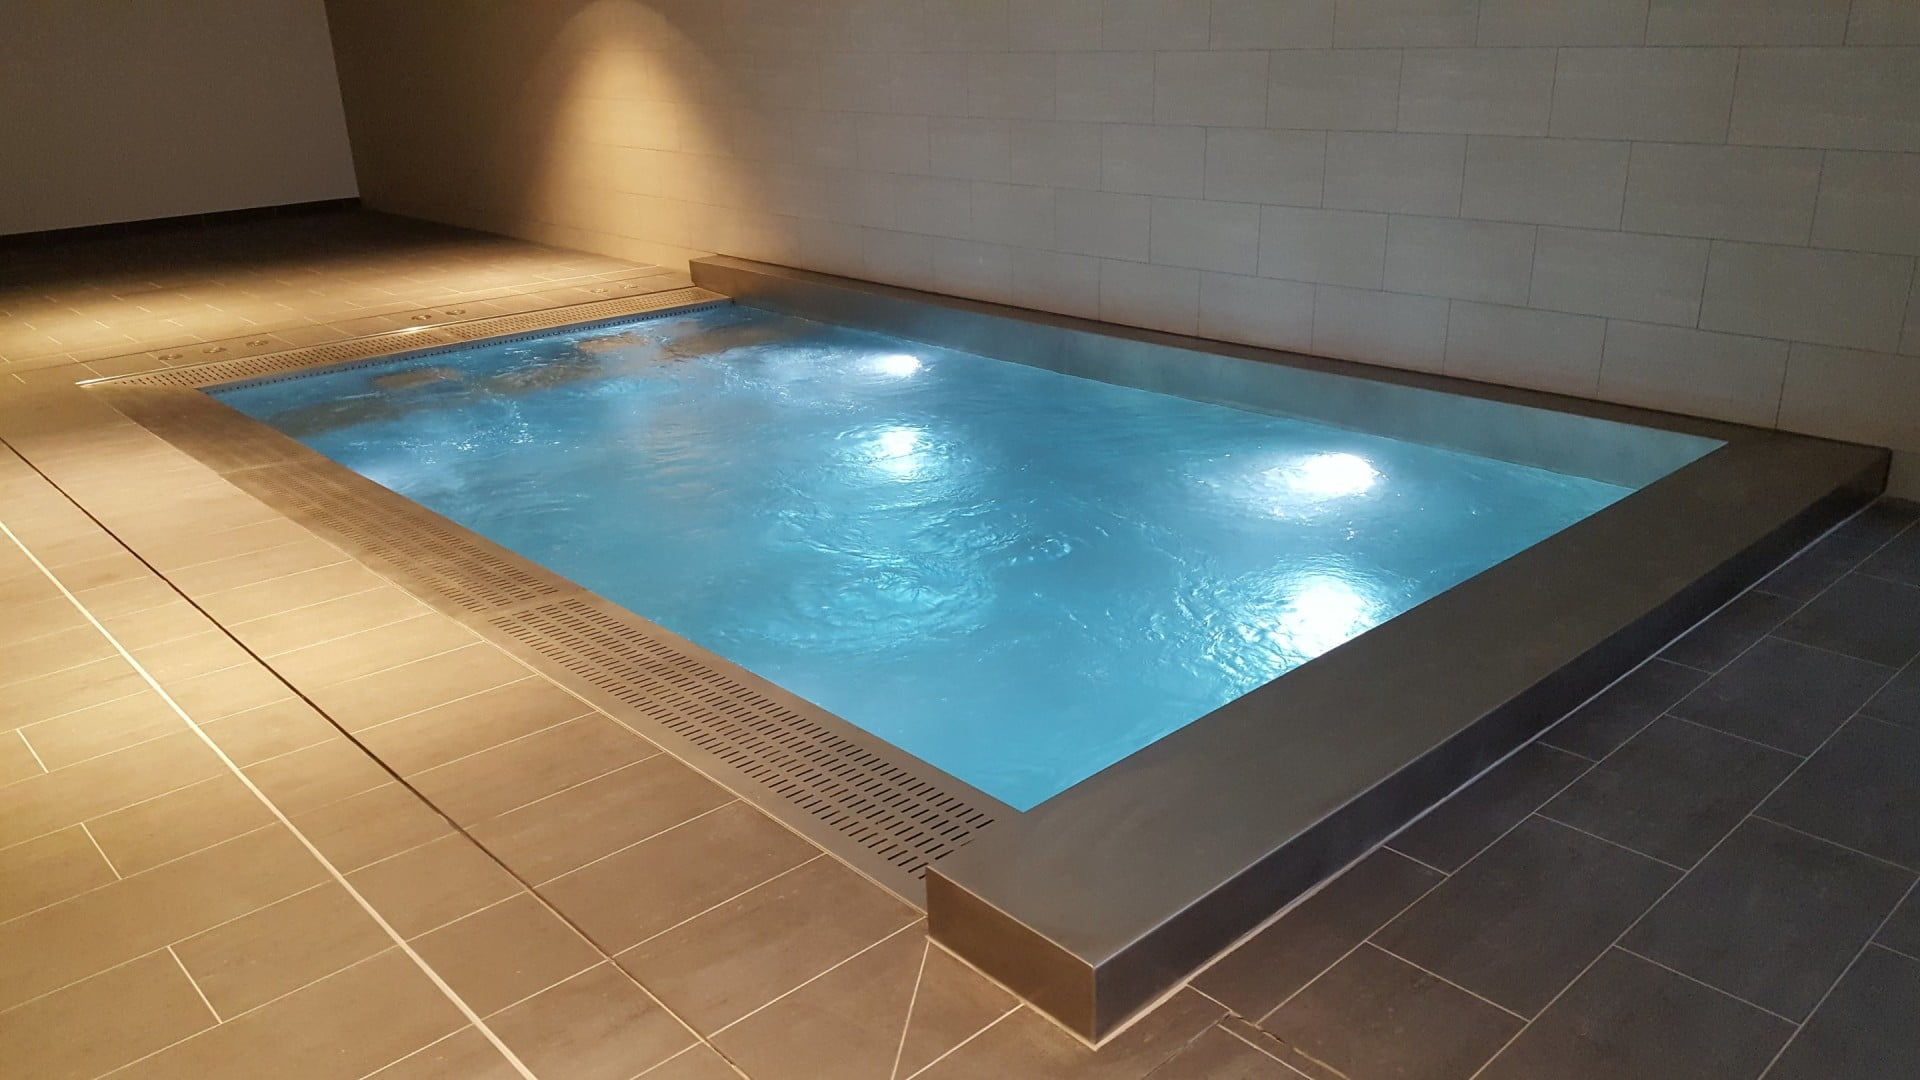 Nage contre courant piscine free piscine intrieure prive for Piscine contre courant